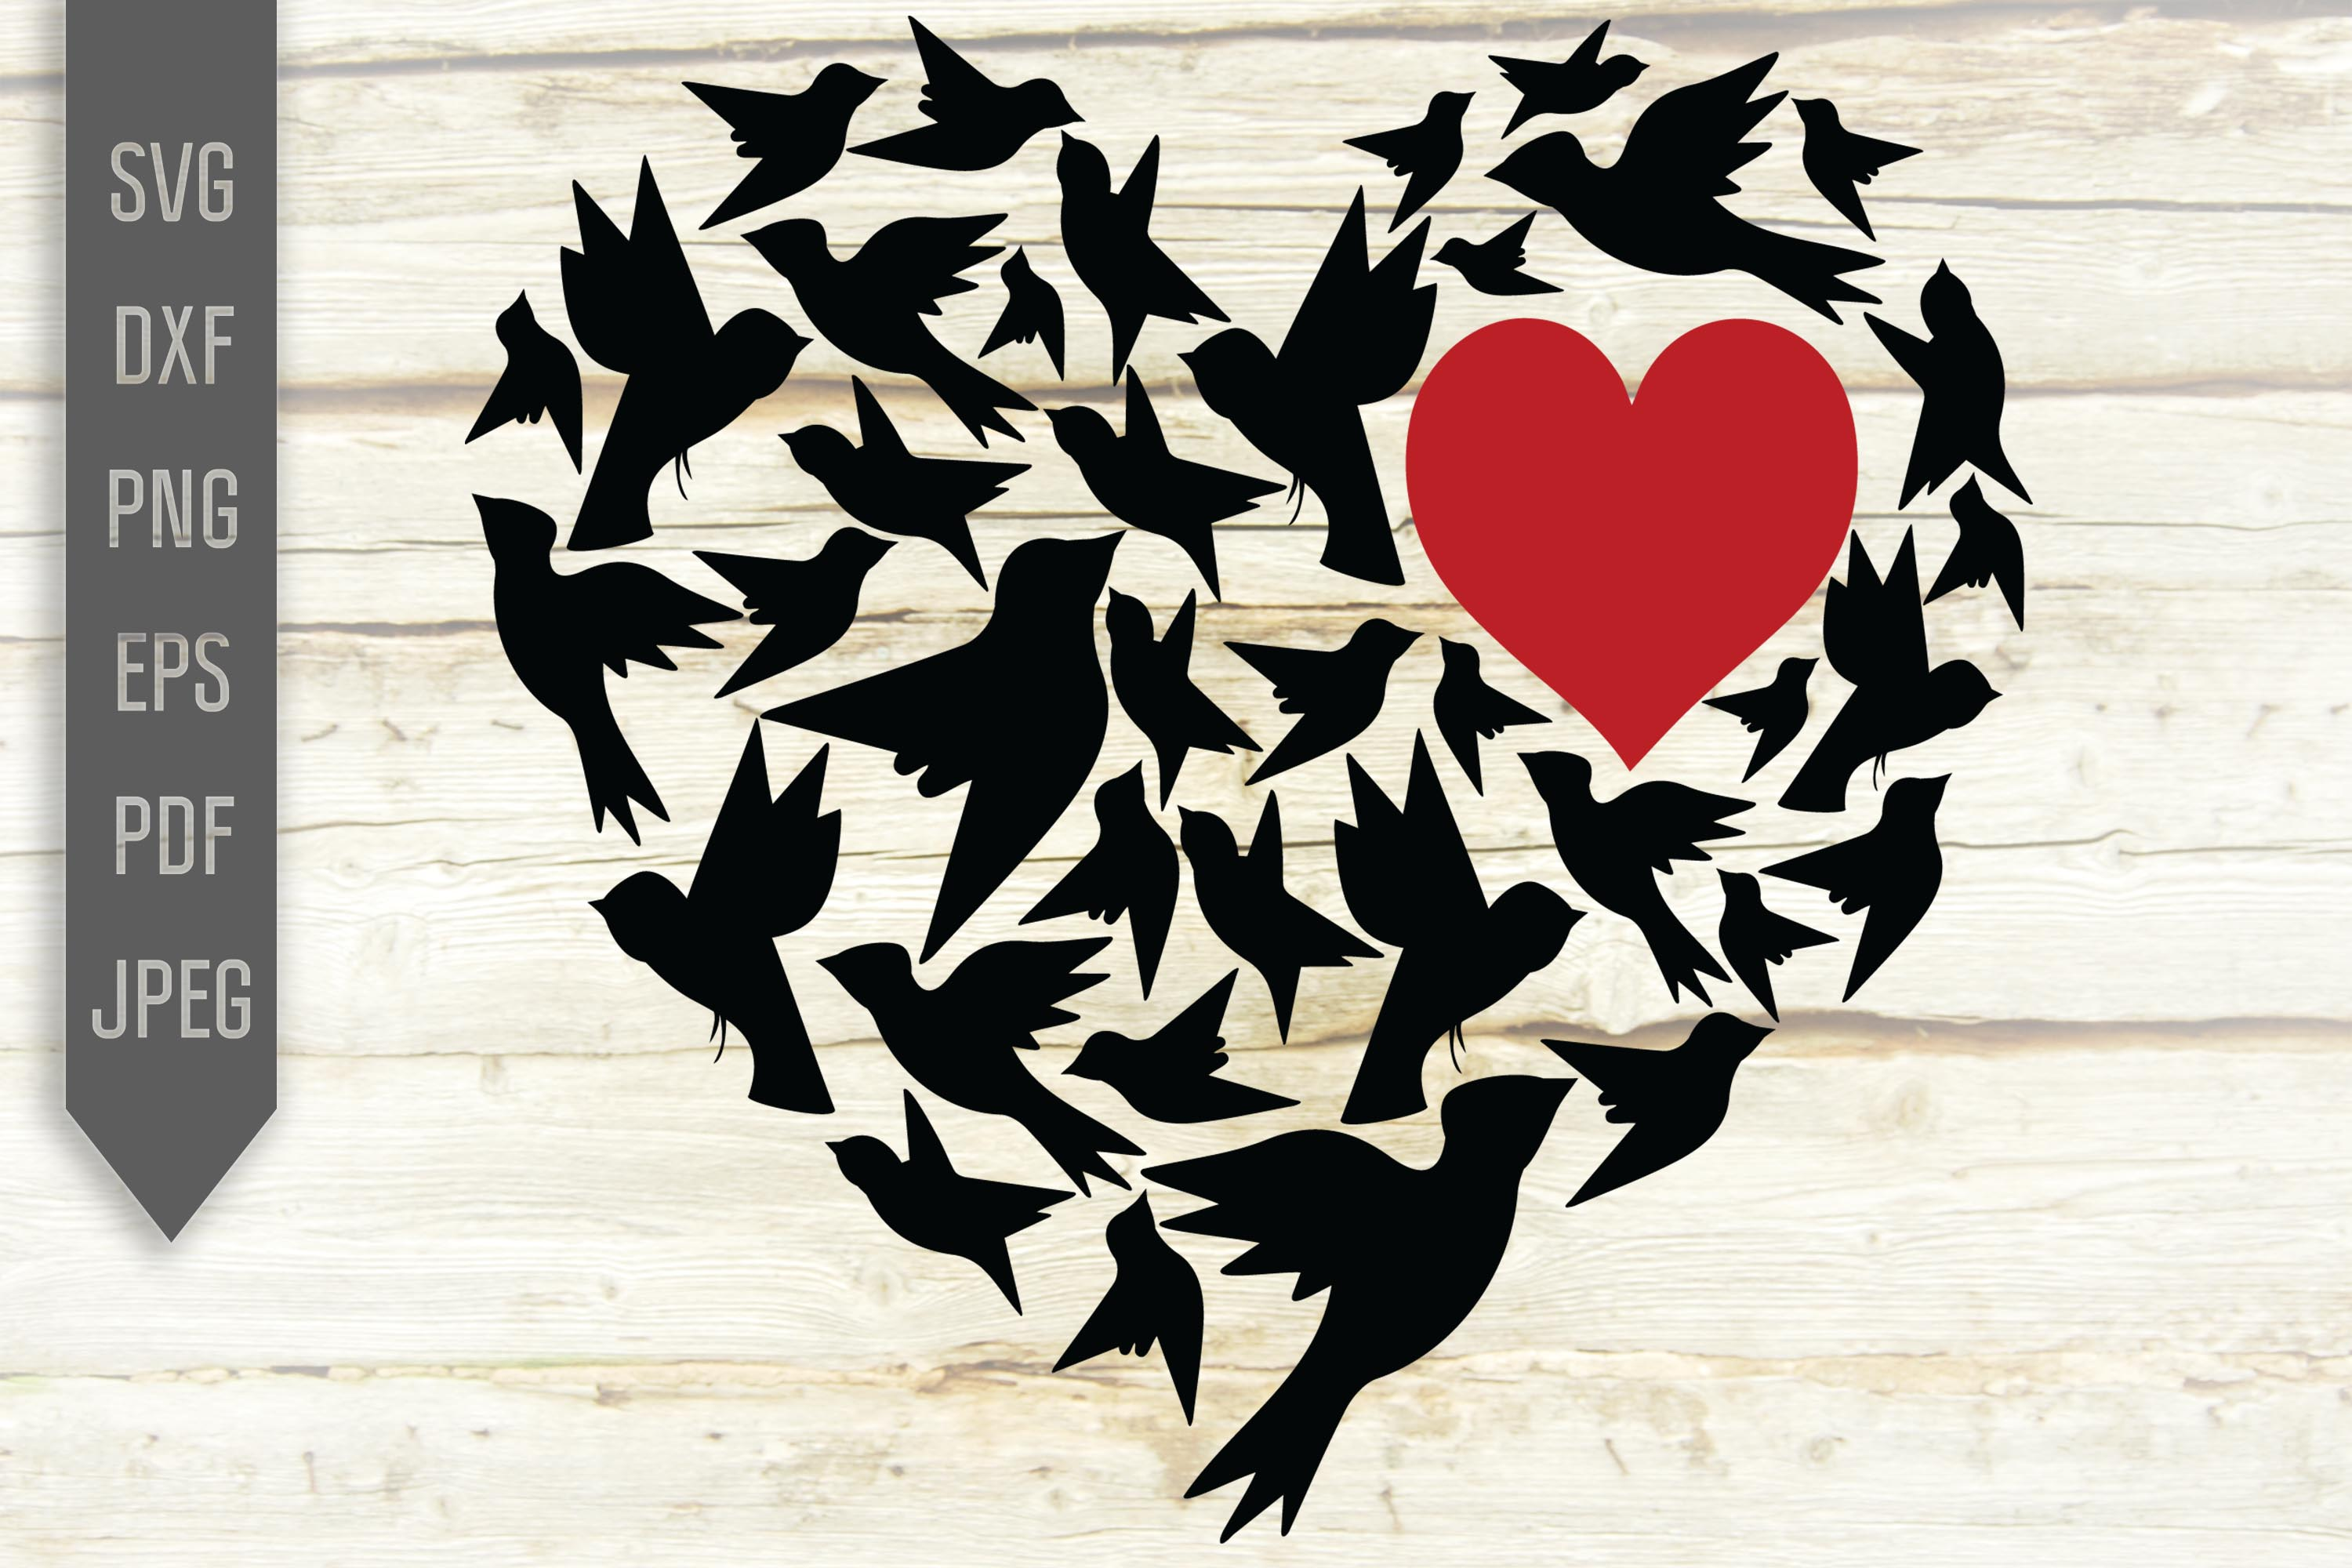 Download Free Love Birds In Heart Svg Valentine Crafts Graphic By for Cricut Explore, Silhouette and other cutting machines.